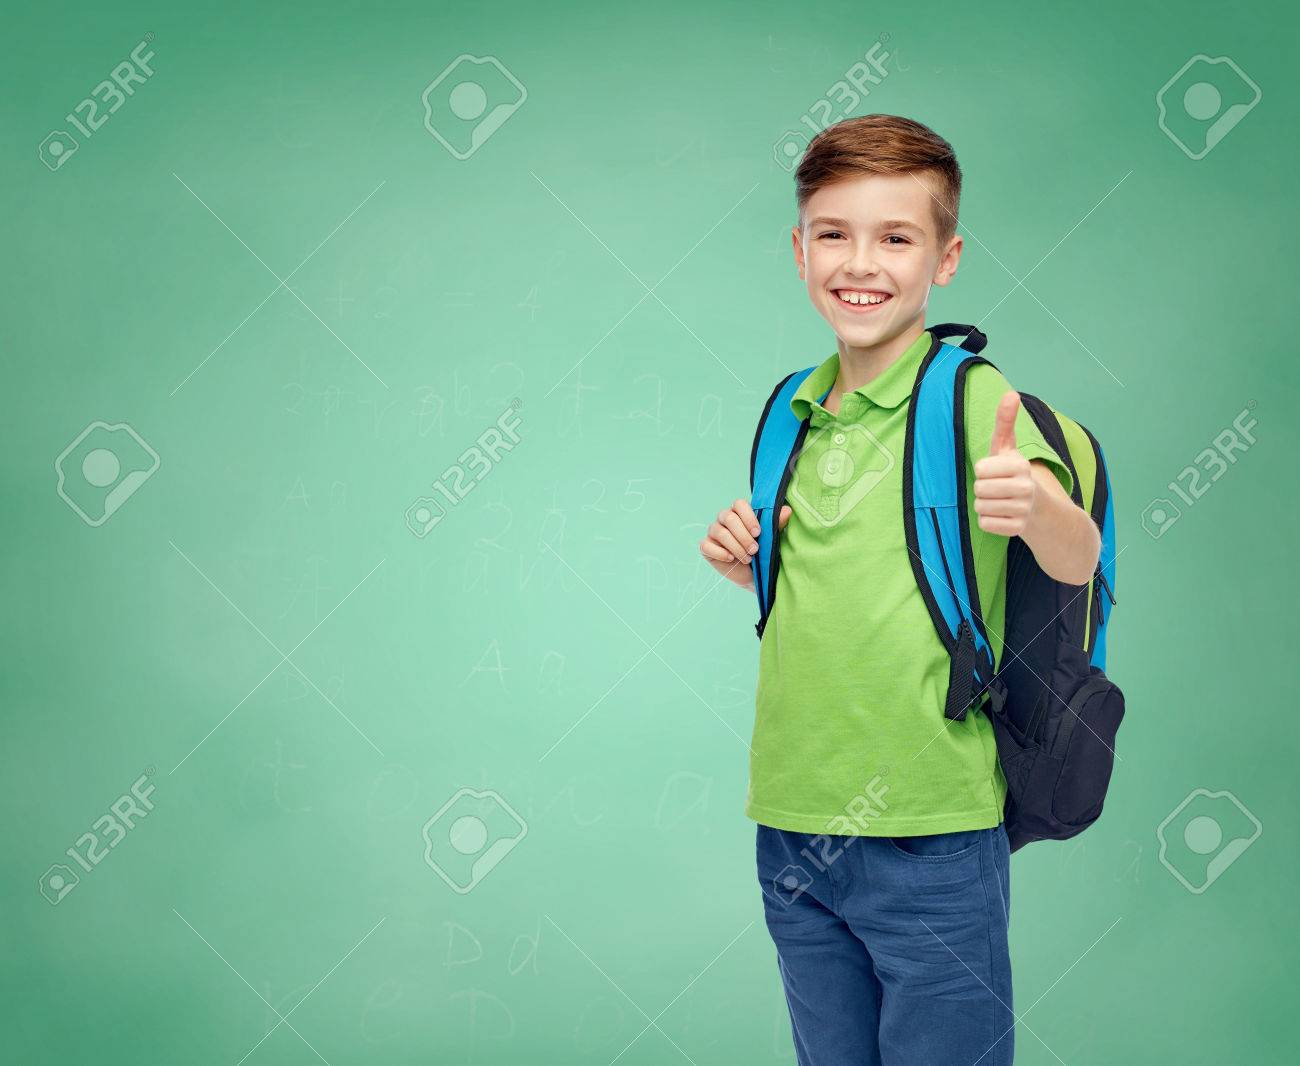 childhood, education and people concept - happy smiling student boy with school bag over green school chalk board background - 61033711